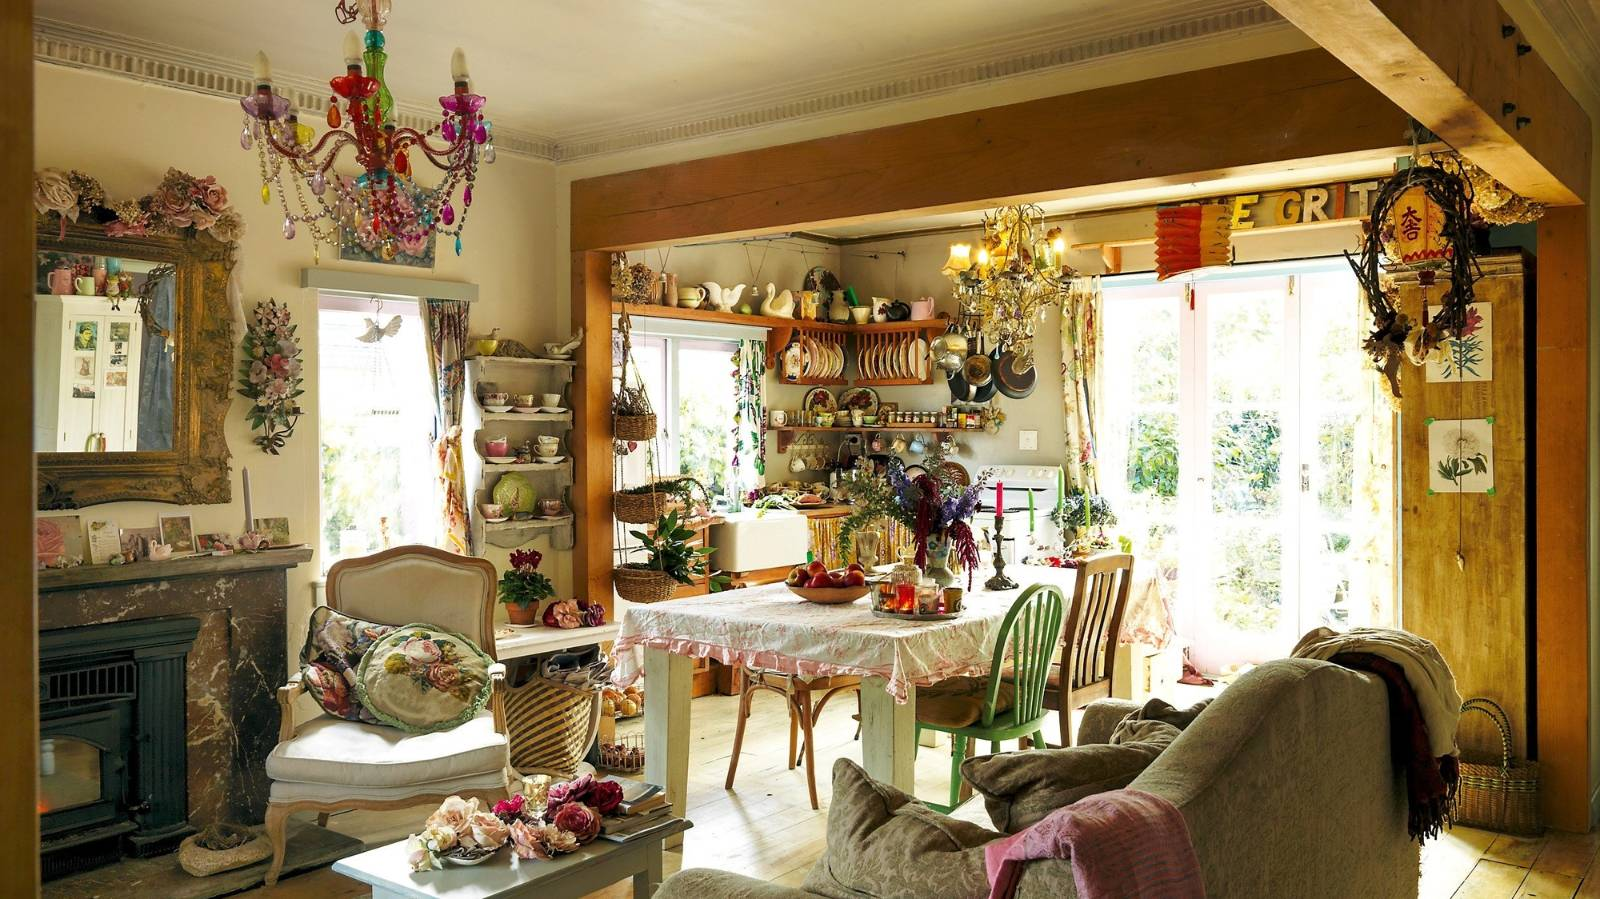 Inside the magical cottage of artist Micky Light